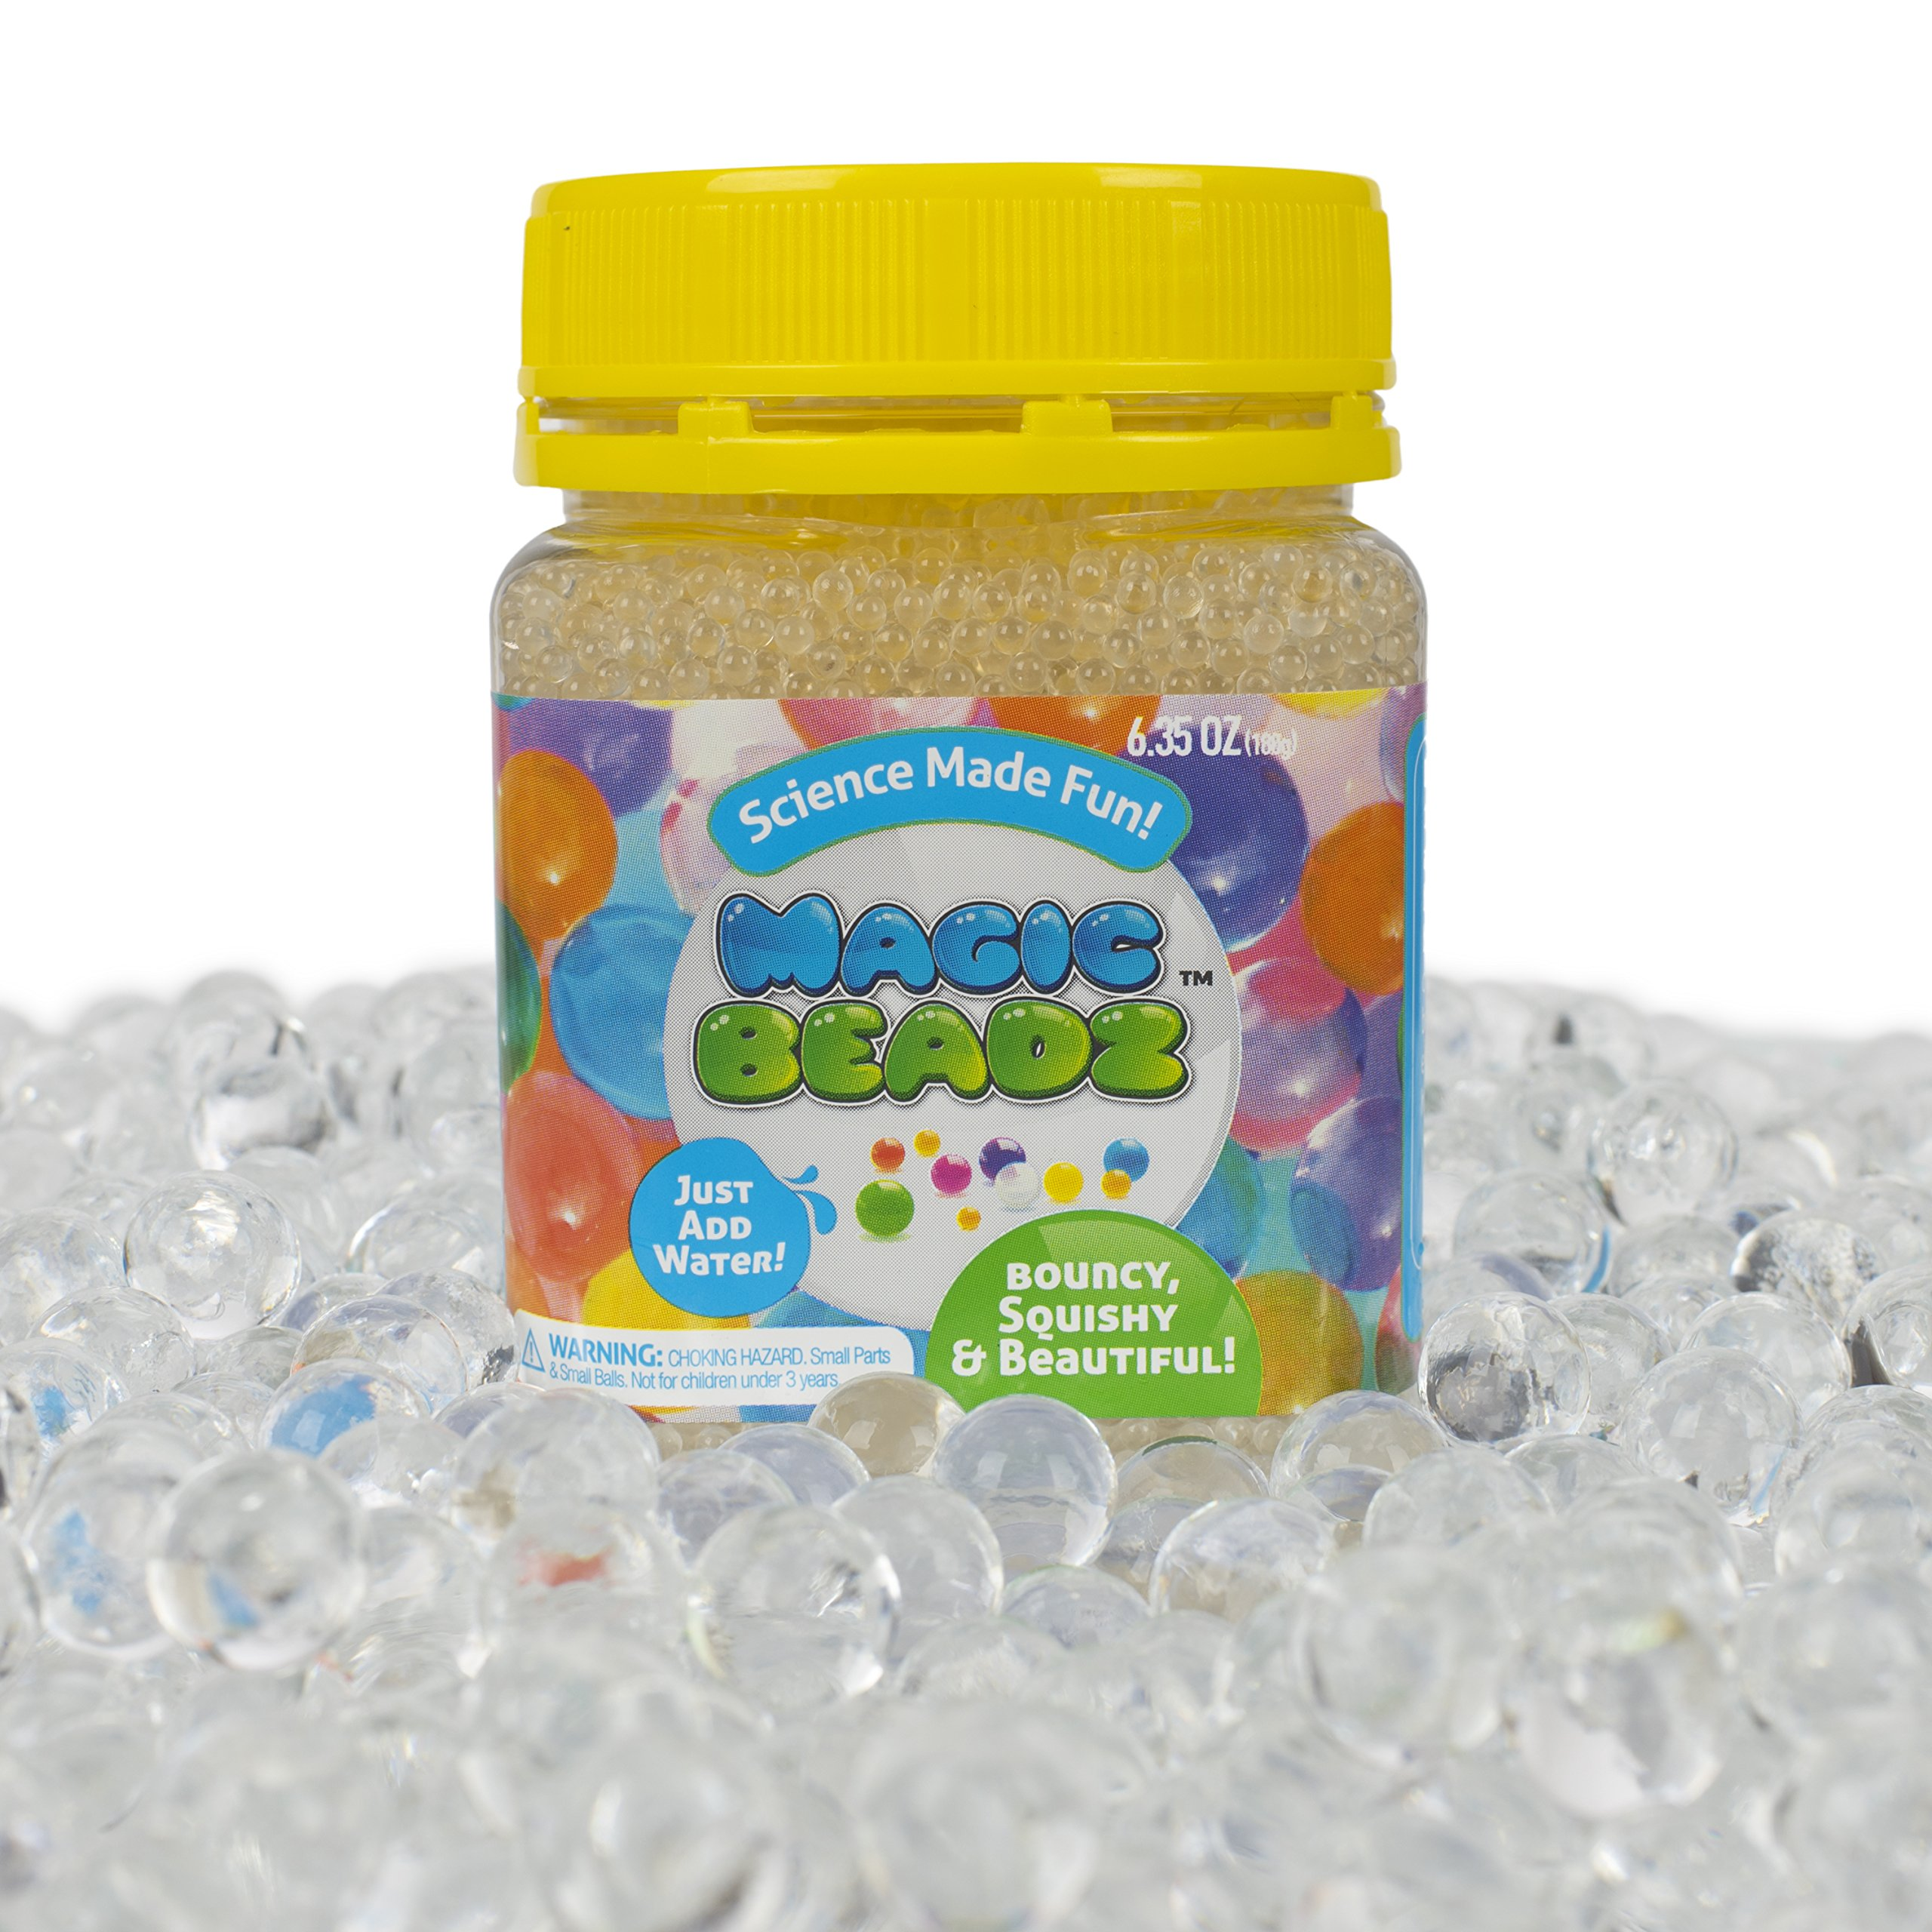 Magic Beadz Clear Jelly Water Beads - Transparent Gel Pearls - Vase Filler - Wedding Centerpiece - Candles - Flower Arrangements - Over 20,000 Beads - Makes Over Six Gallons